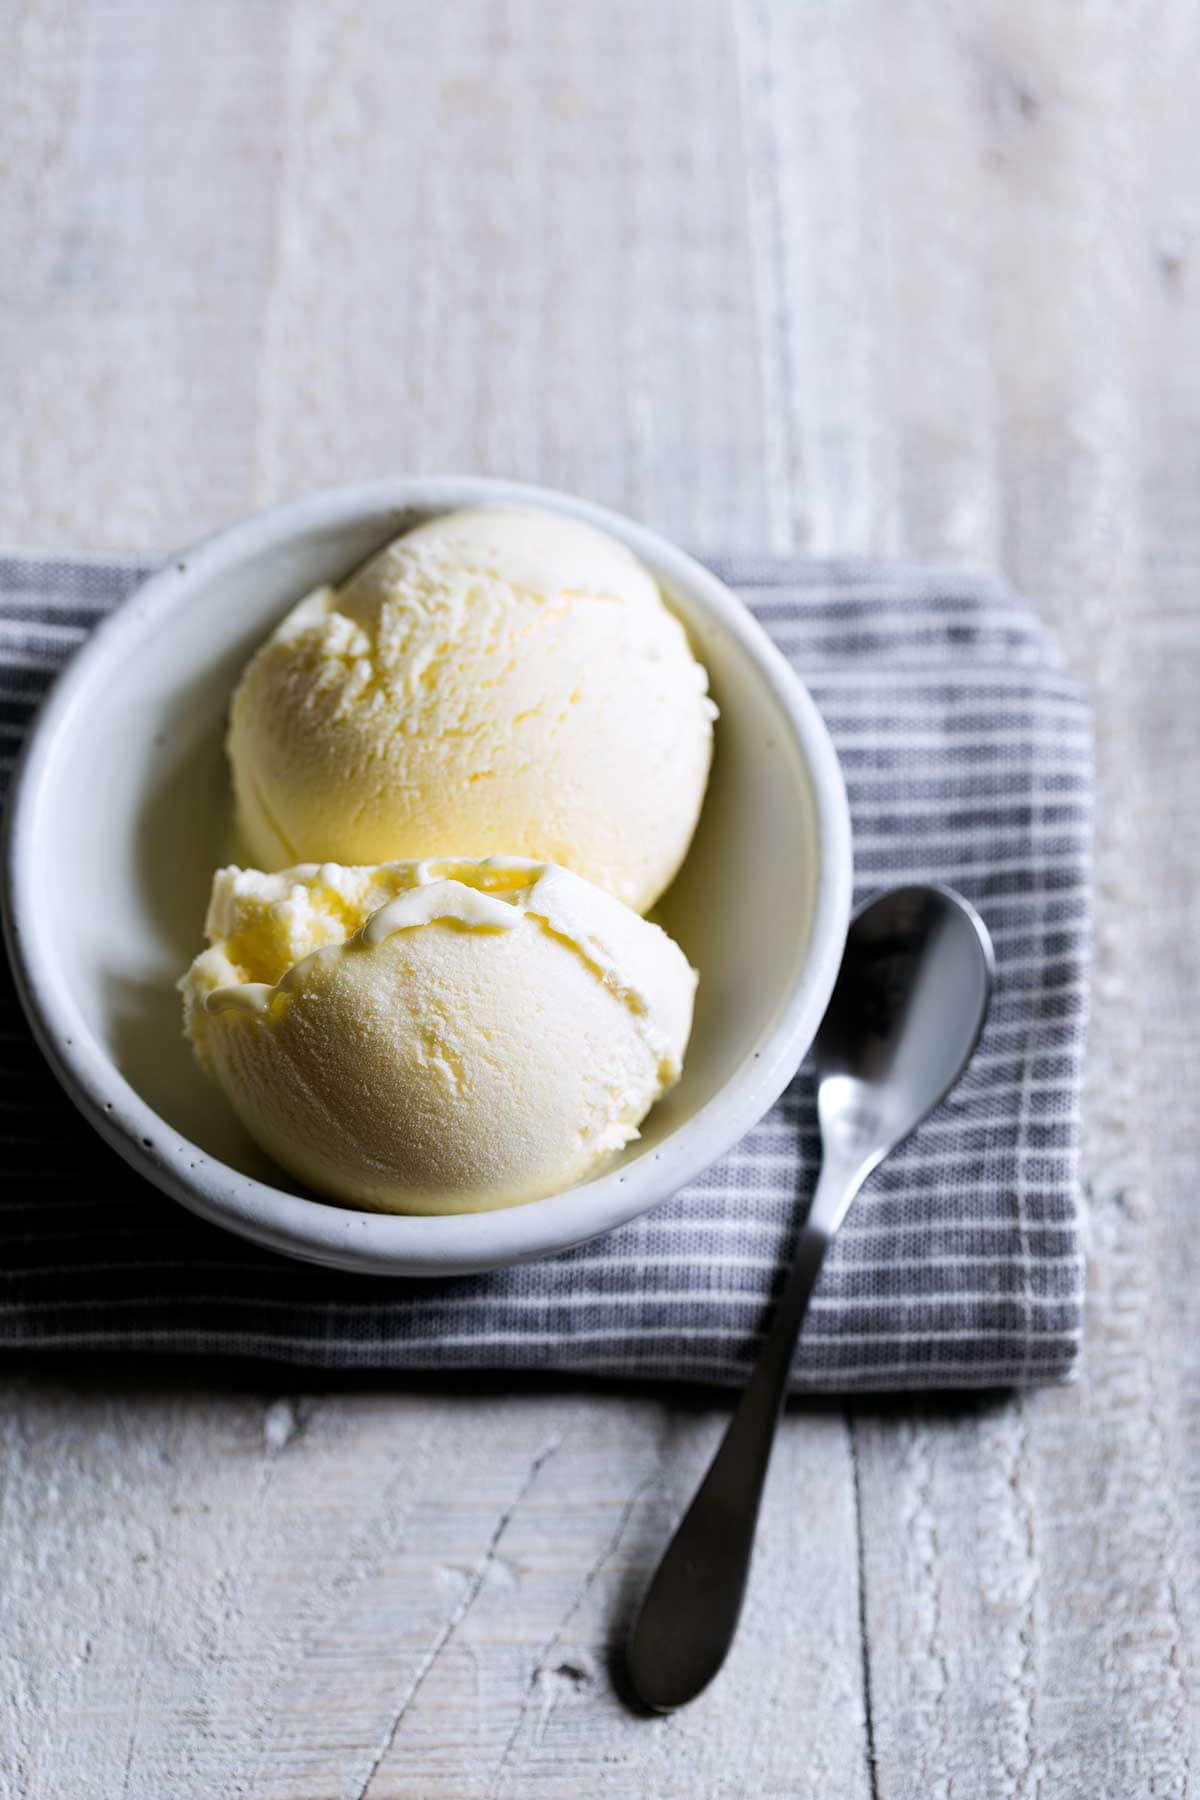 Finished lemon ice cream recipe in a bowl on a napkin